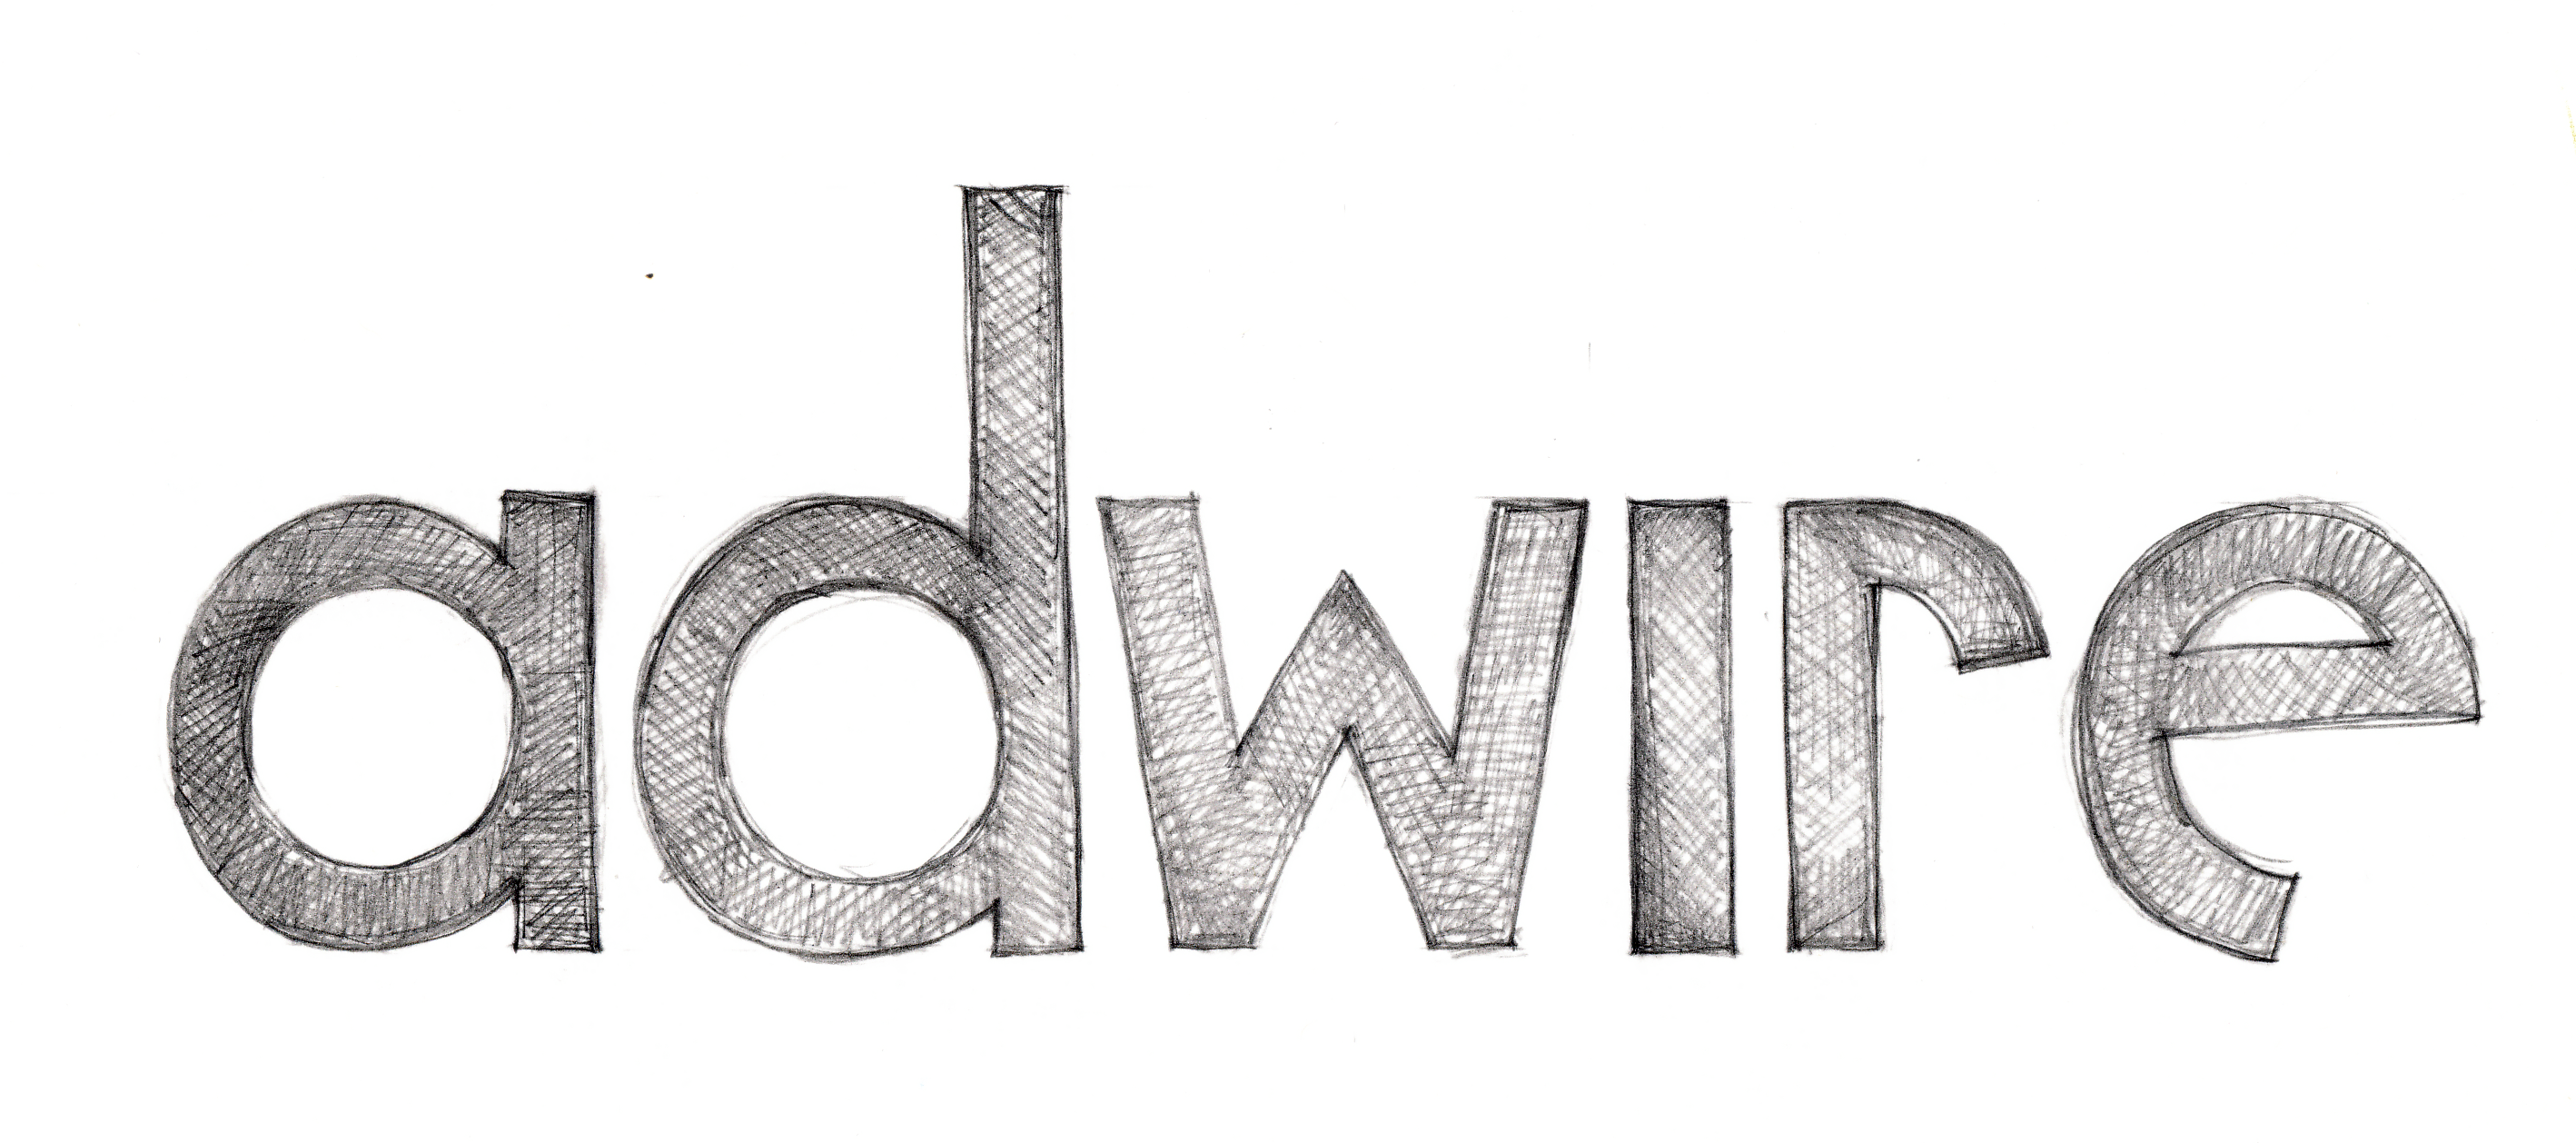 adwire - information design and digital marketing